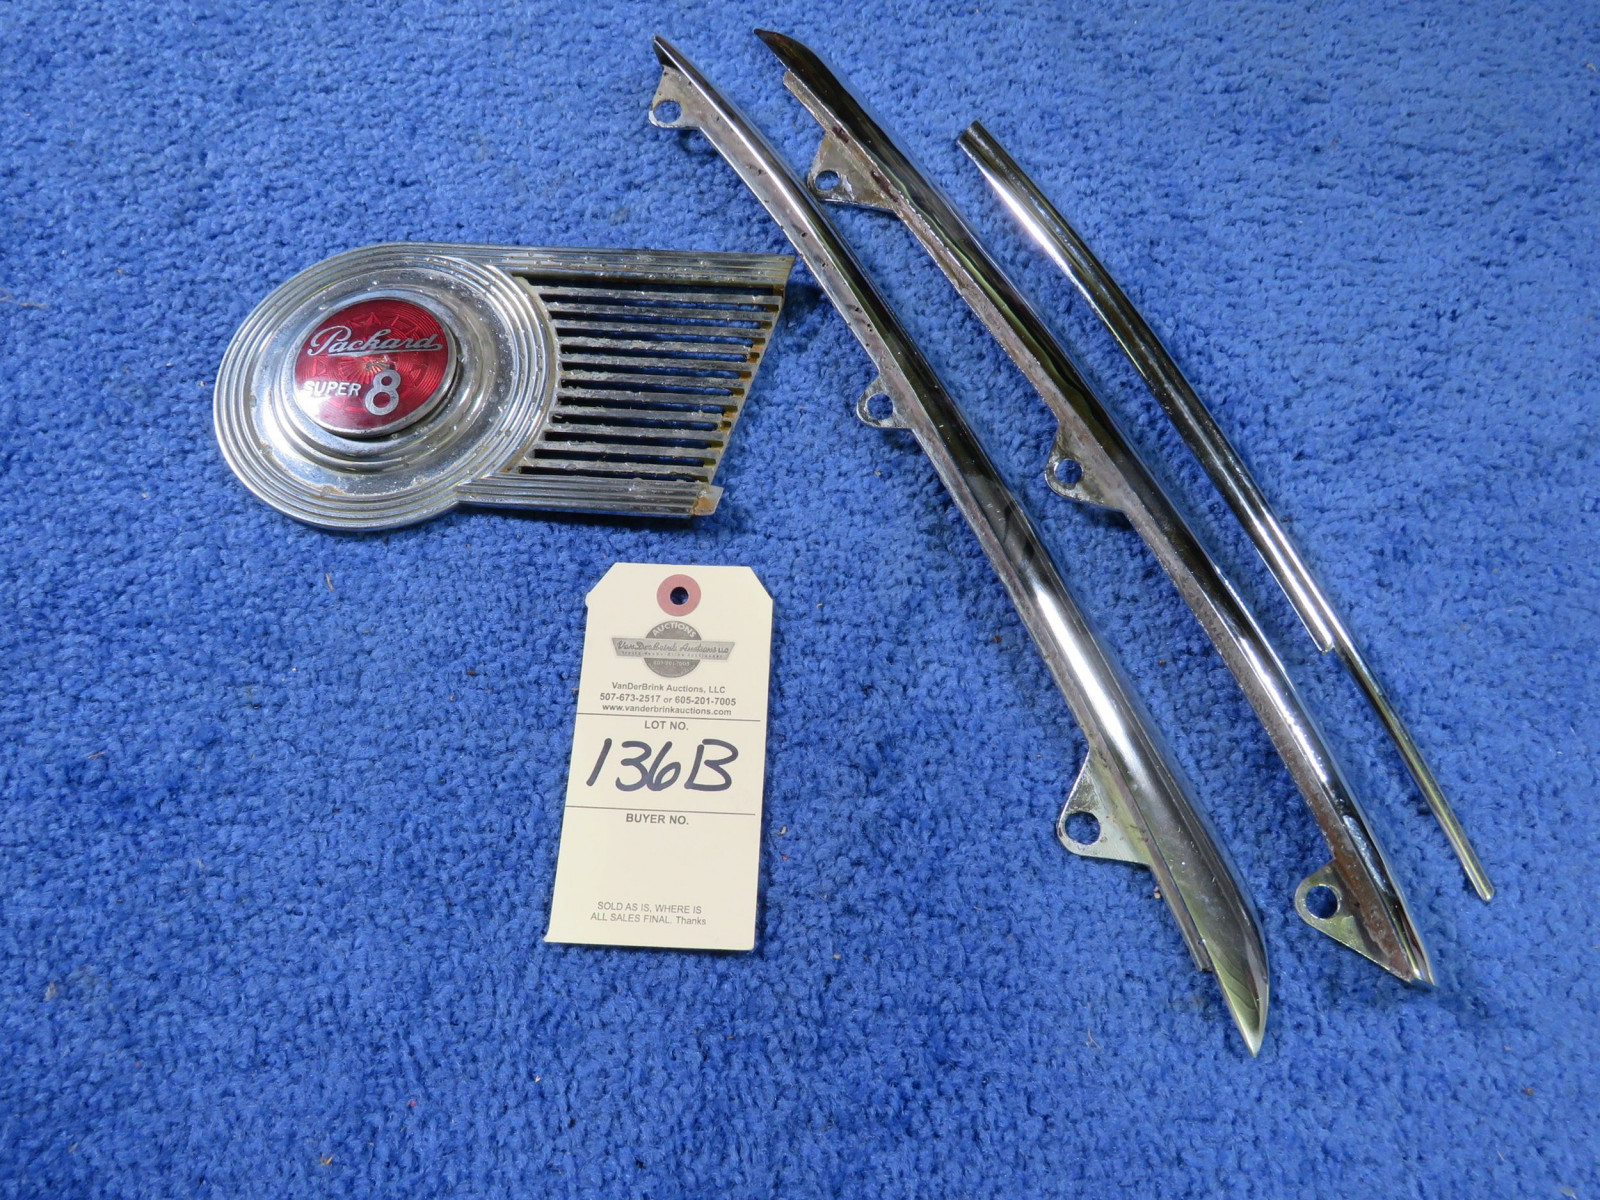 Packard Emblem and 1940 Ford Standard Model A Lip Molding and Wisker - Image 1